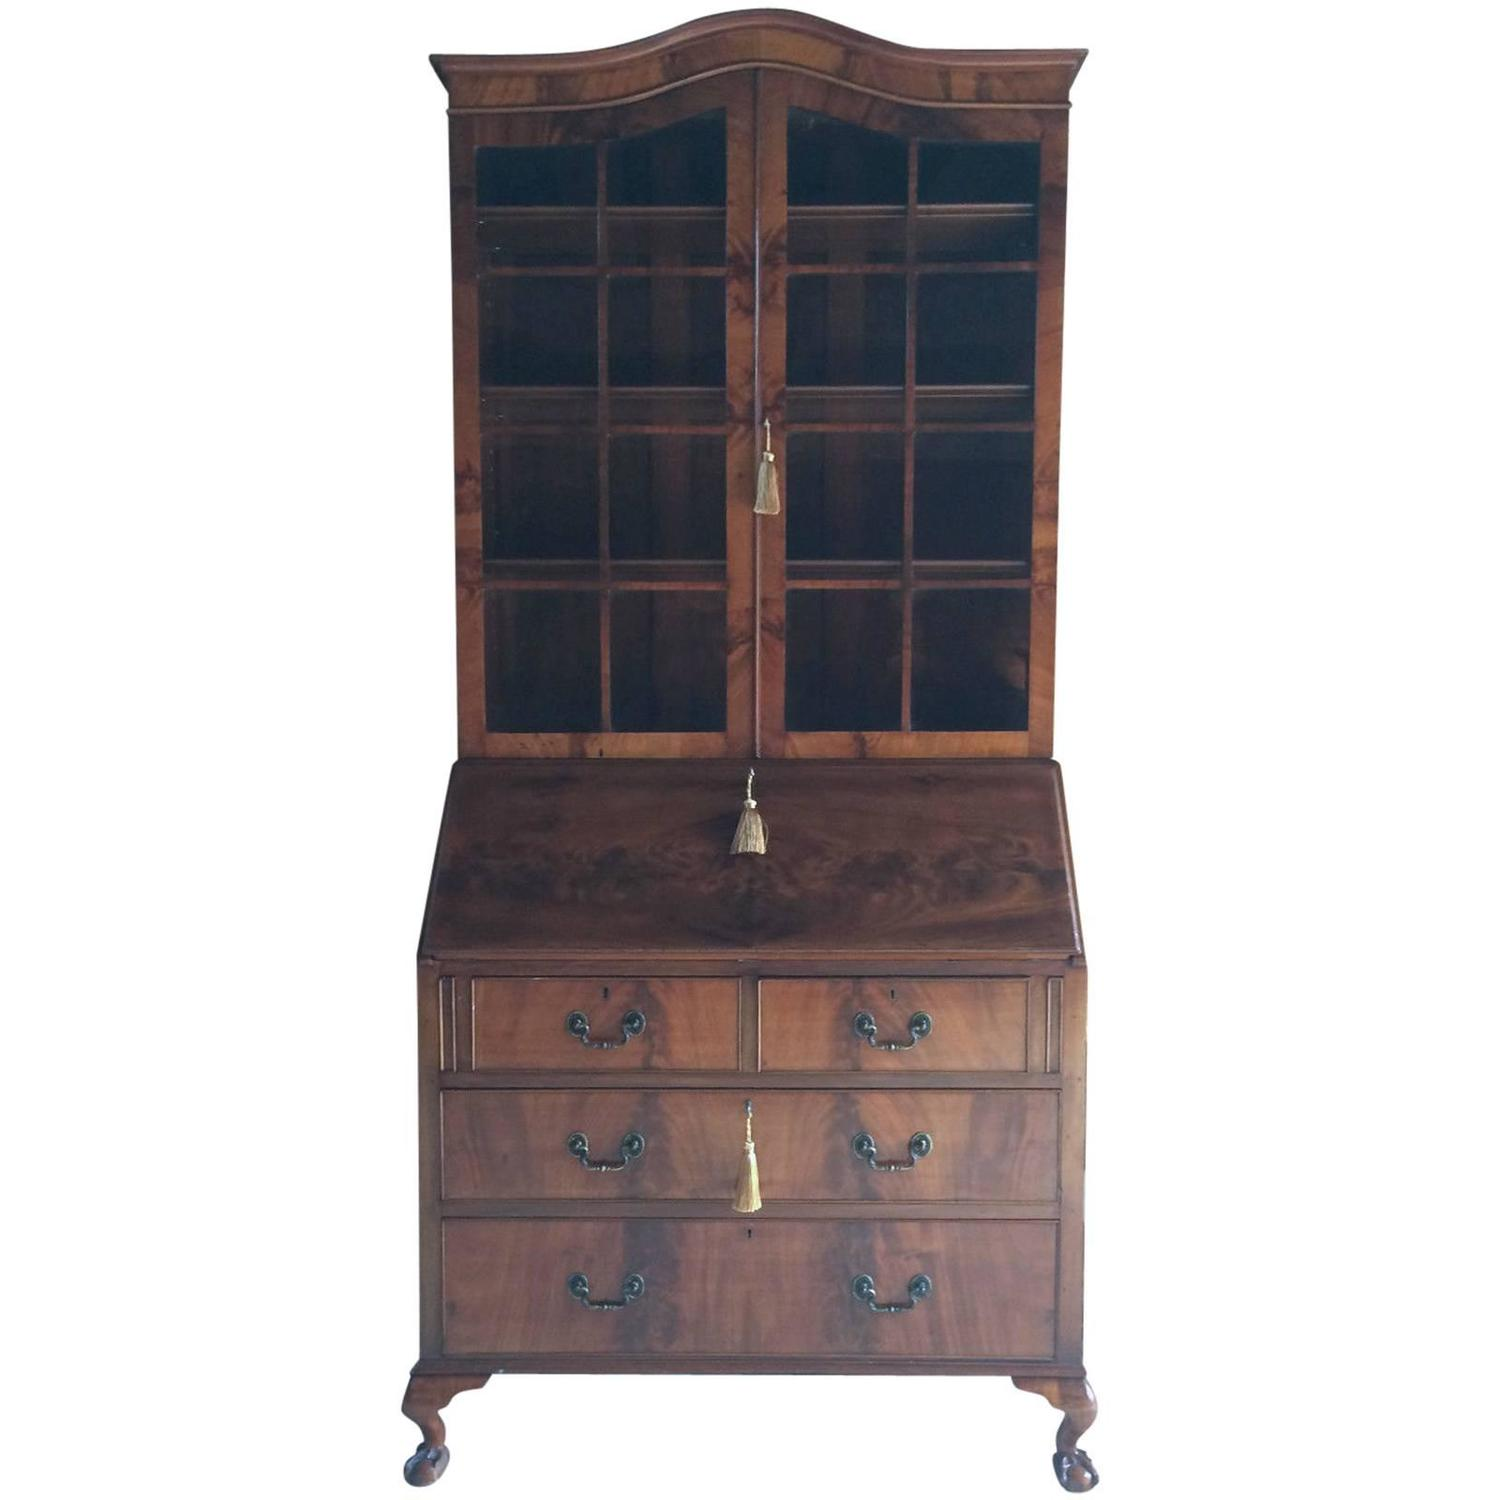 antique style writing bureau bookcase secretaire mahogany at 1stdibs. Black Bedroom Furniture Sets. Home Design Ideas